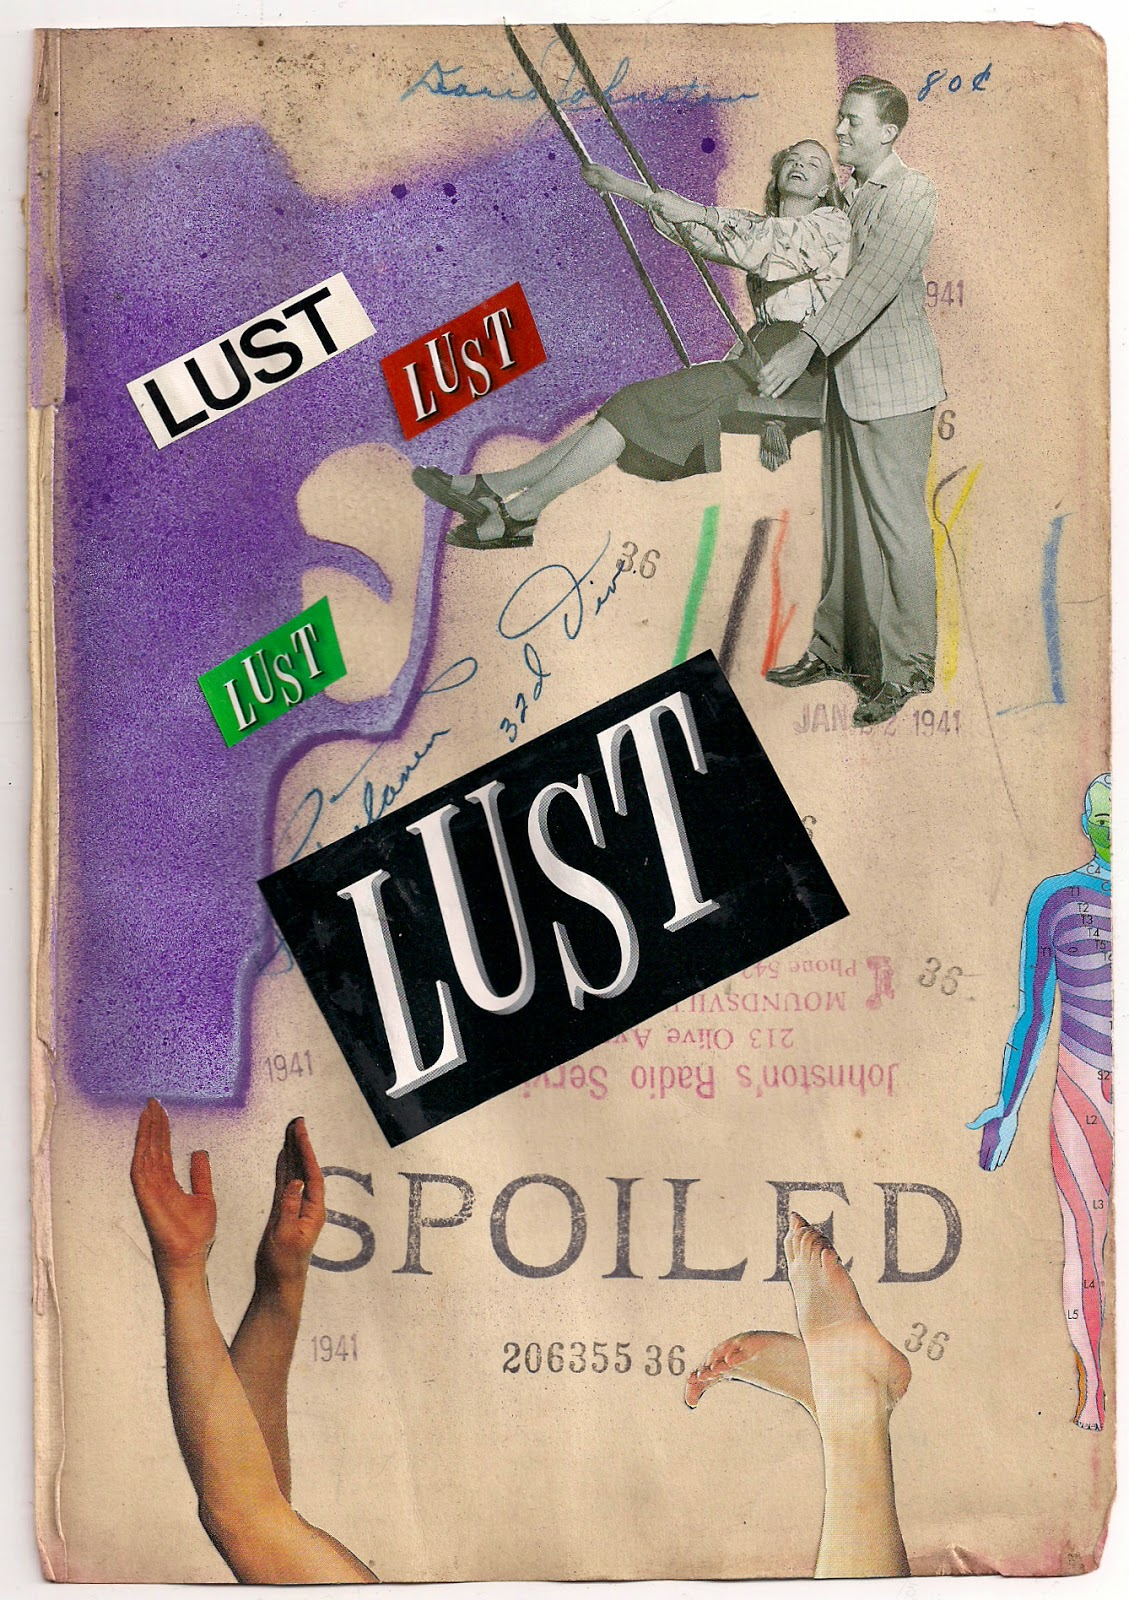 https://www.etsy.com/listing/183004921/spoiled-lust-by-diane-irby-original